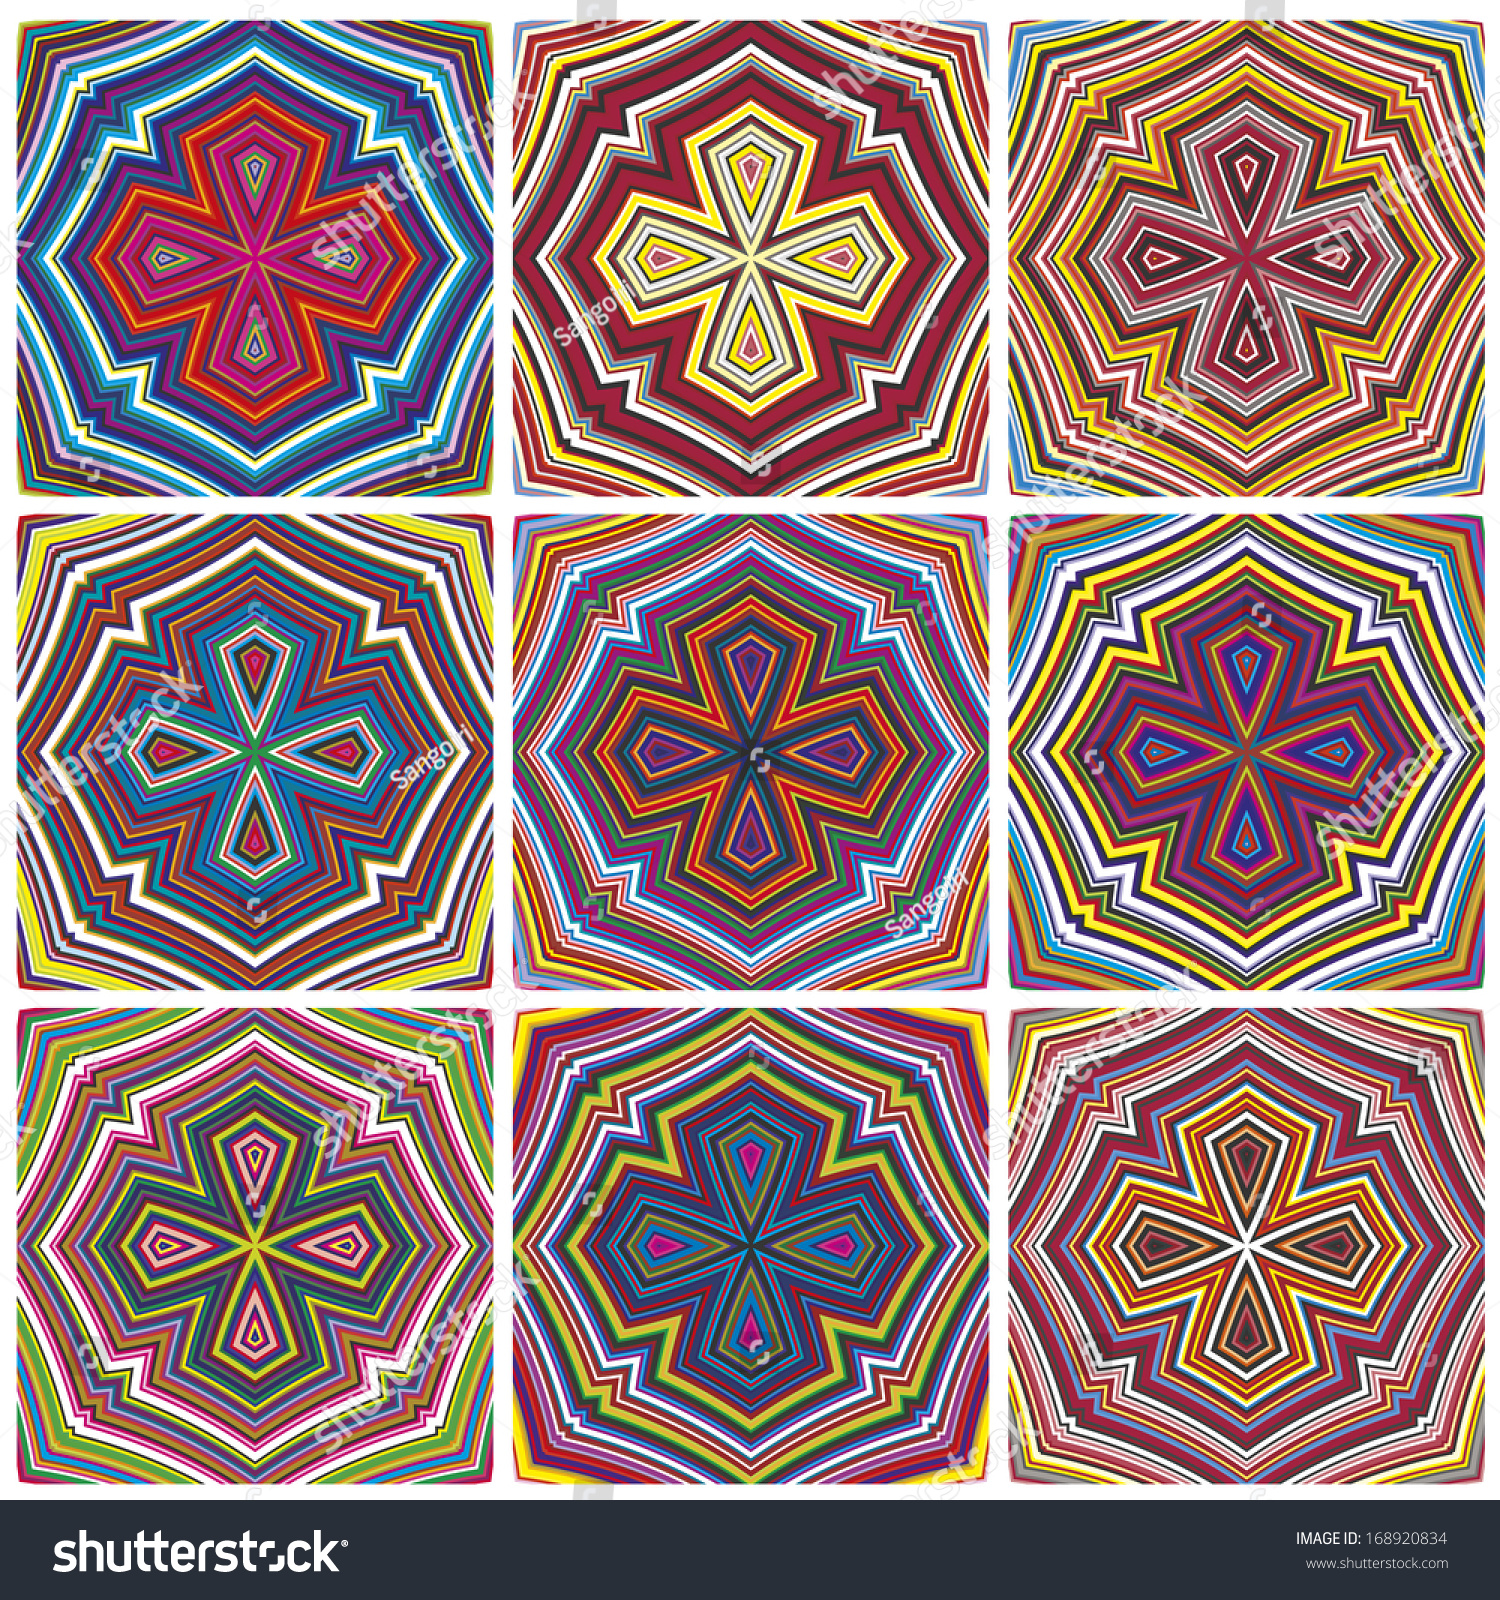 Design Art From Kenyadern Seamless Vector Pattern In Vivid Colors